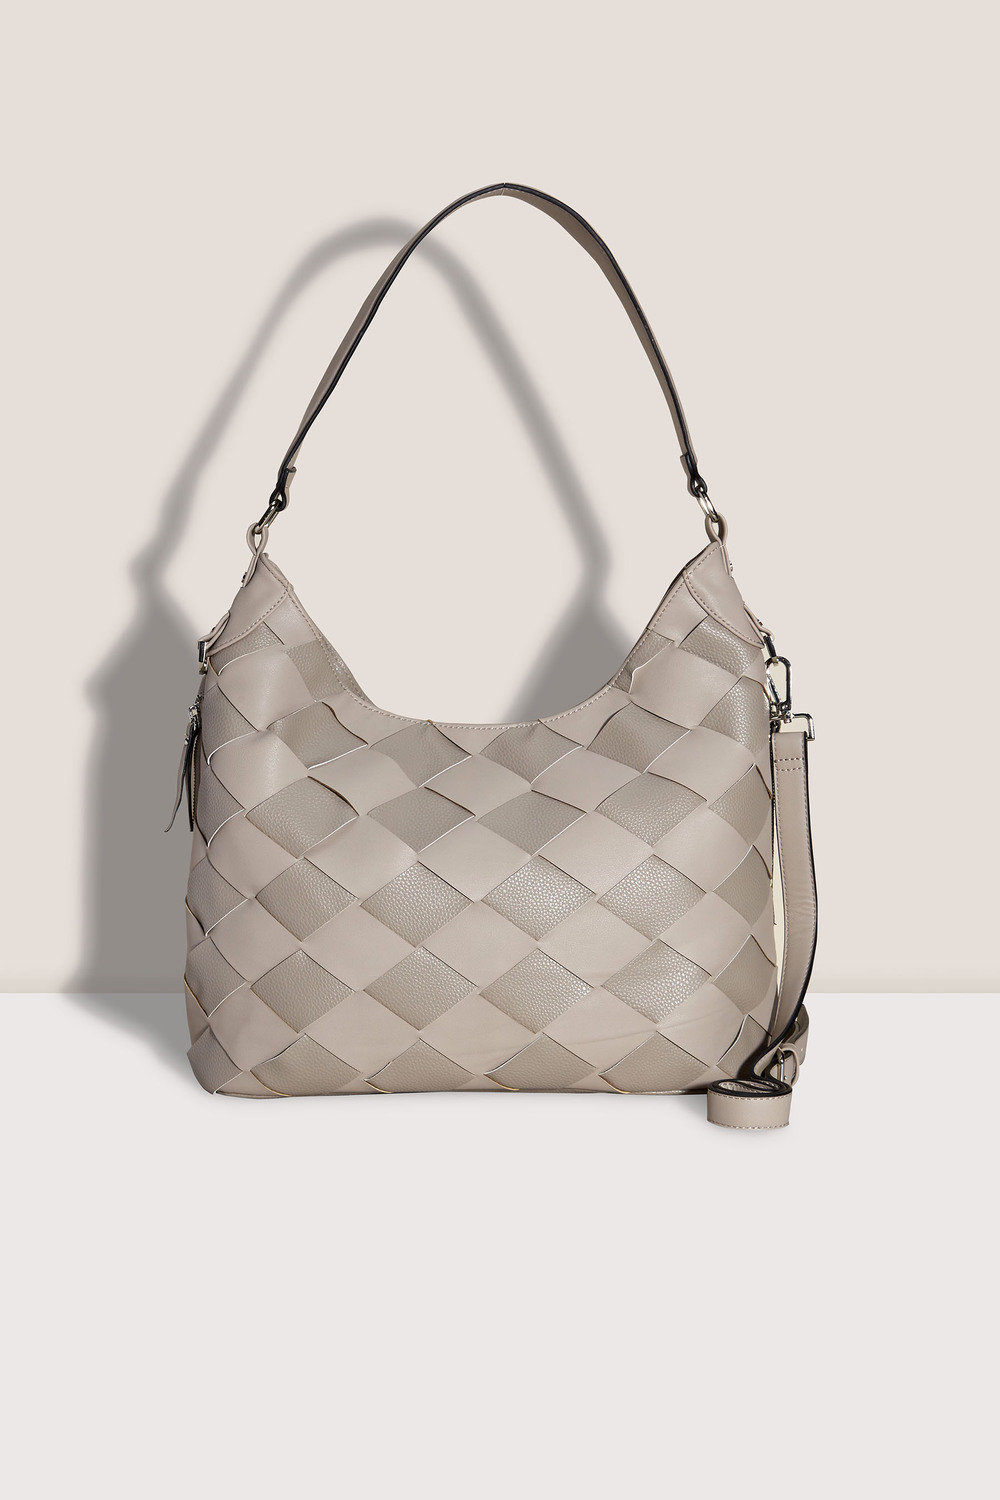 Next Weave Hobo Bag Online  cce7a3a0ede72